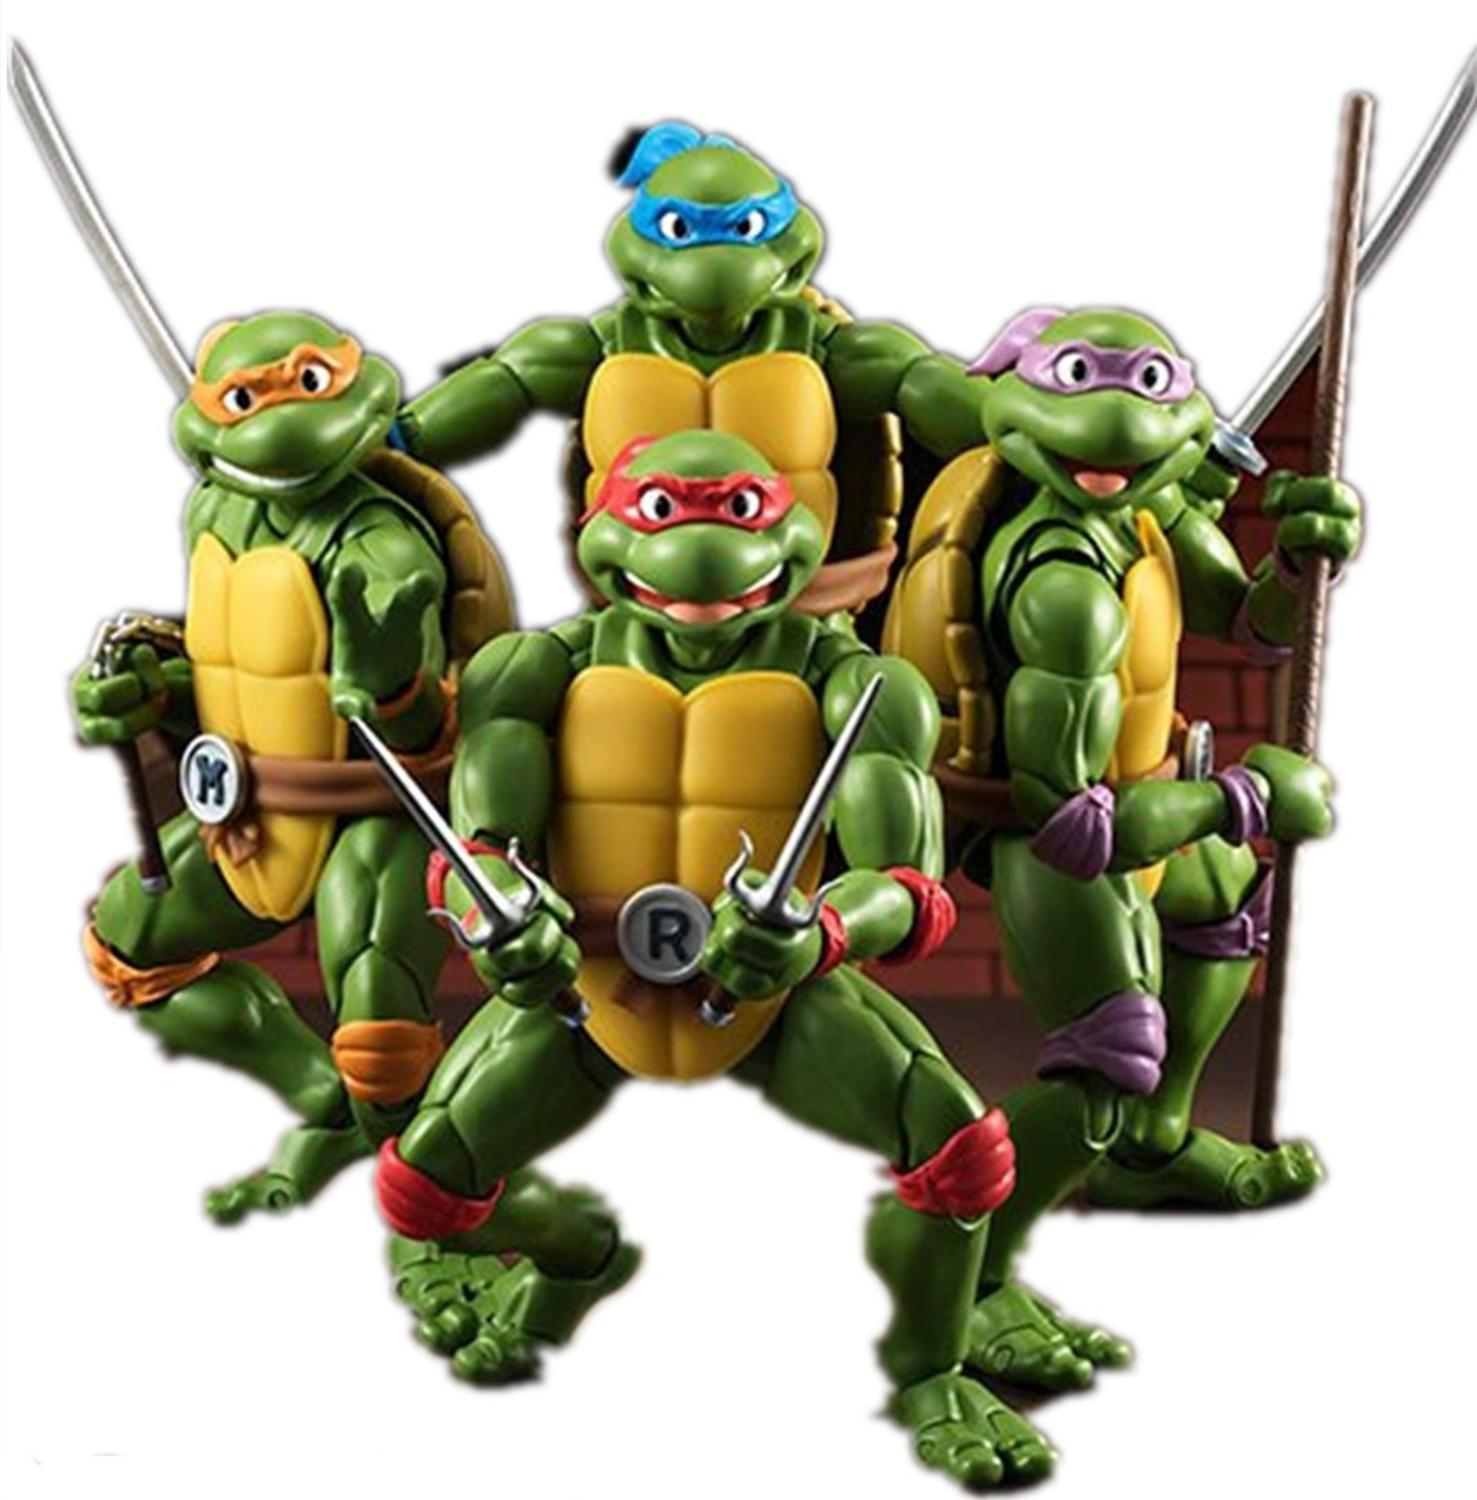 Hot Sales High Quality Anime Figures Leonardo Donatello Michelangelo Raphael PVC Collectible Action Figures Model Turtles Toys image